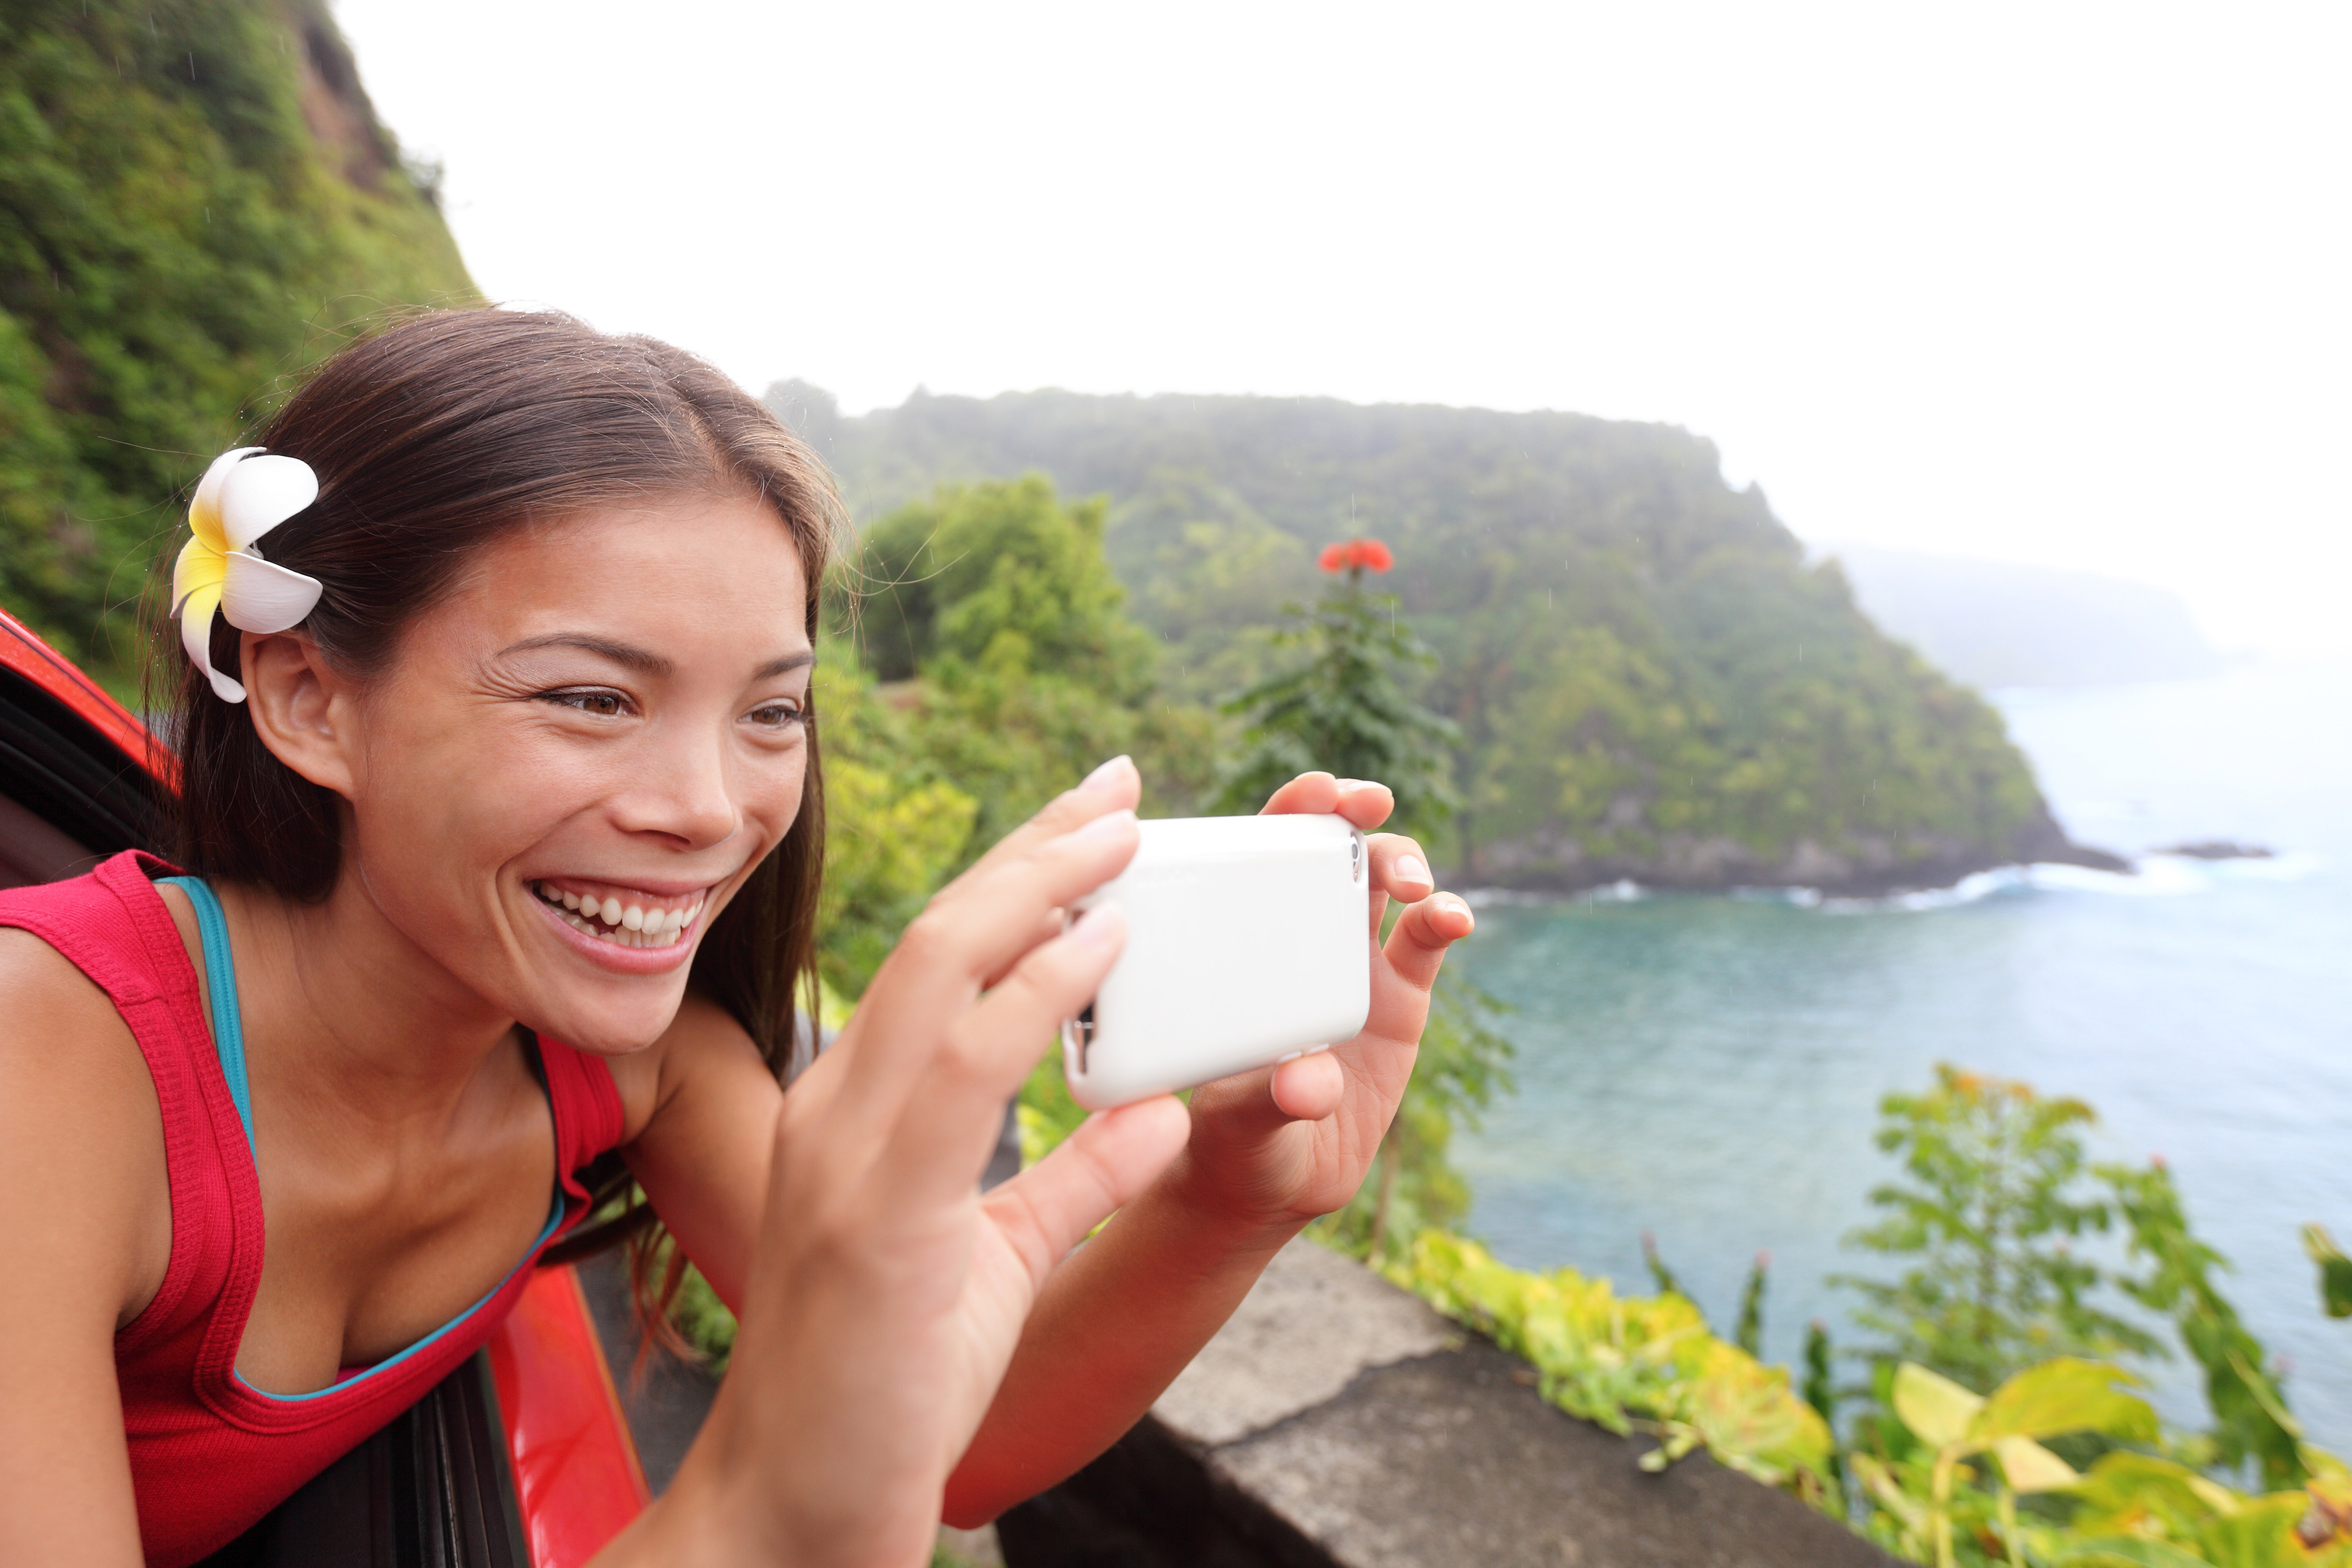 Tourist on Hawaii taking photo with camera phone during car road trip on the famous Road to Hana